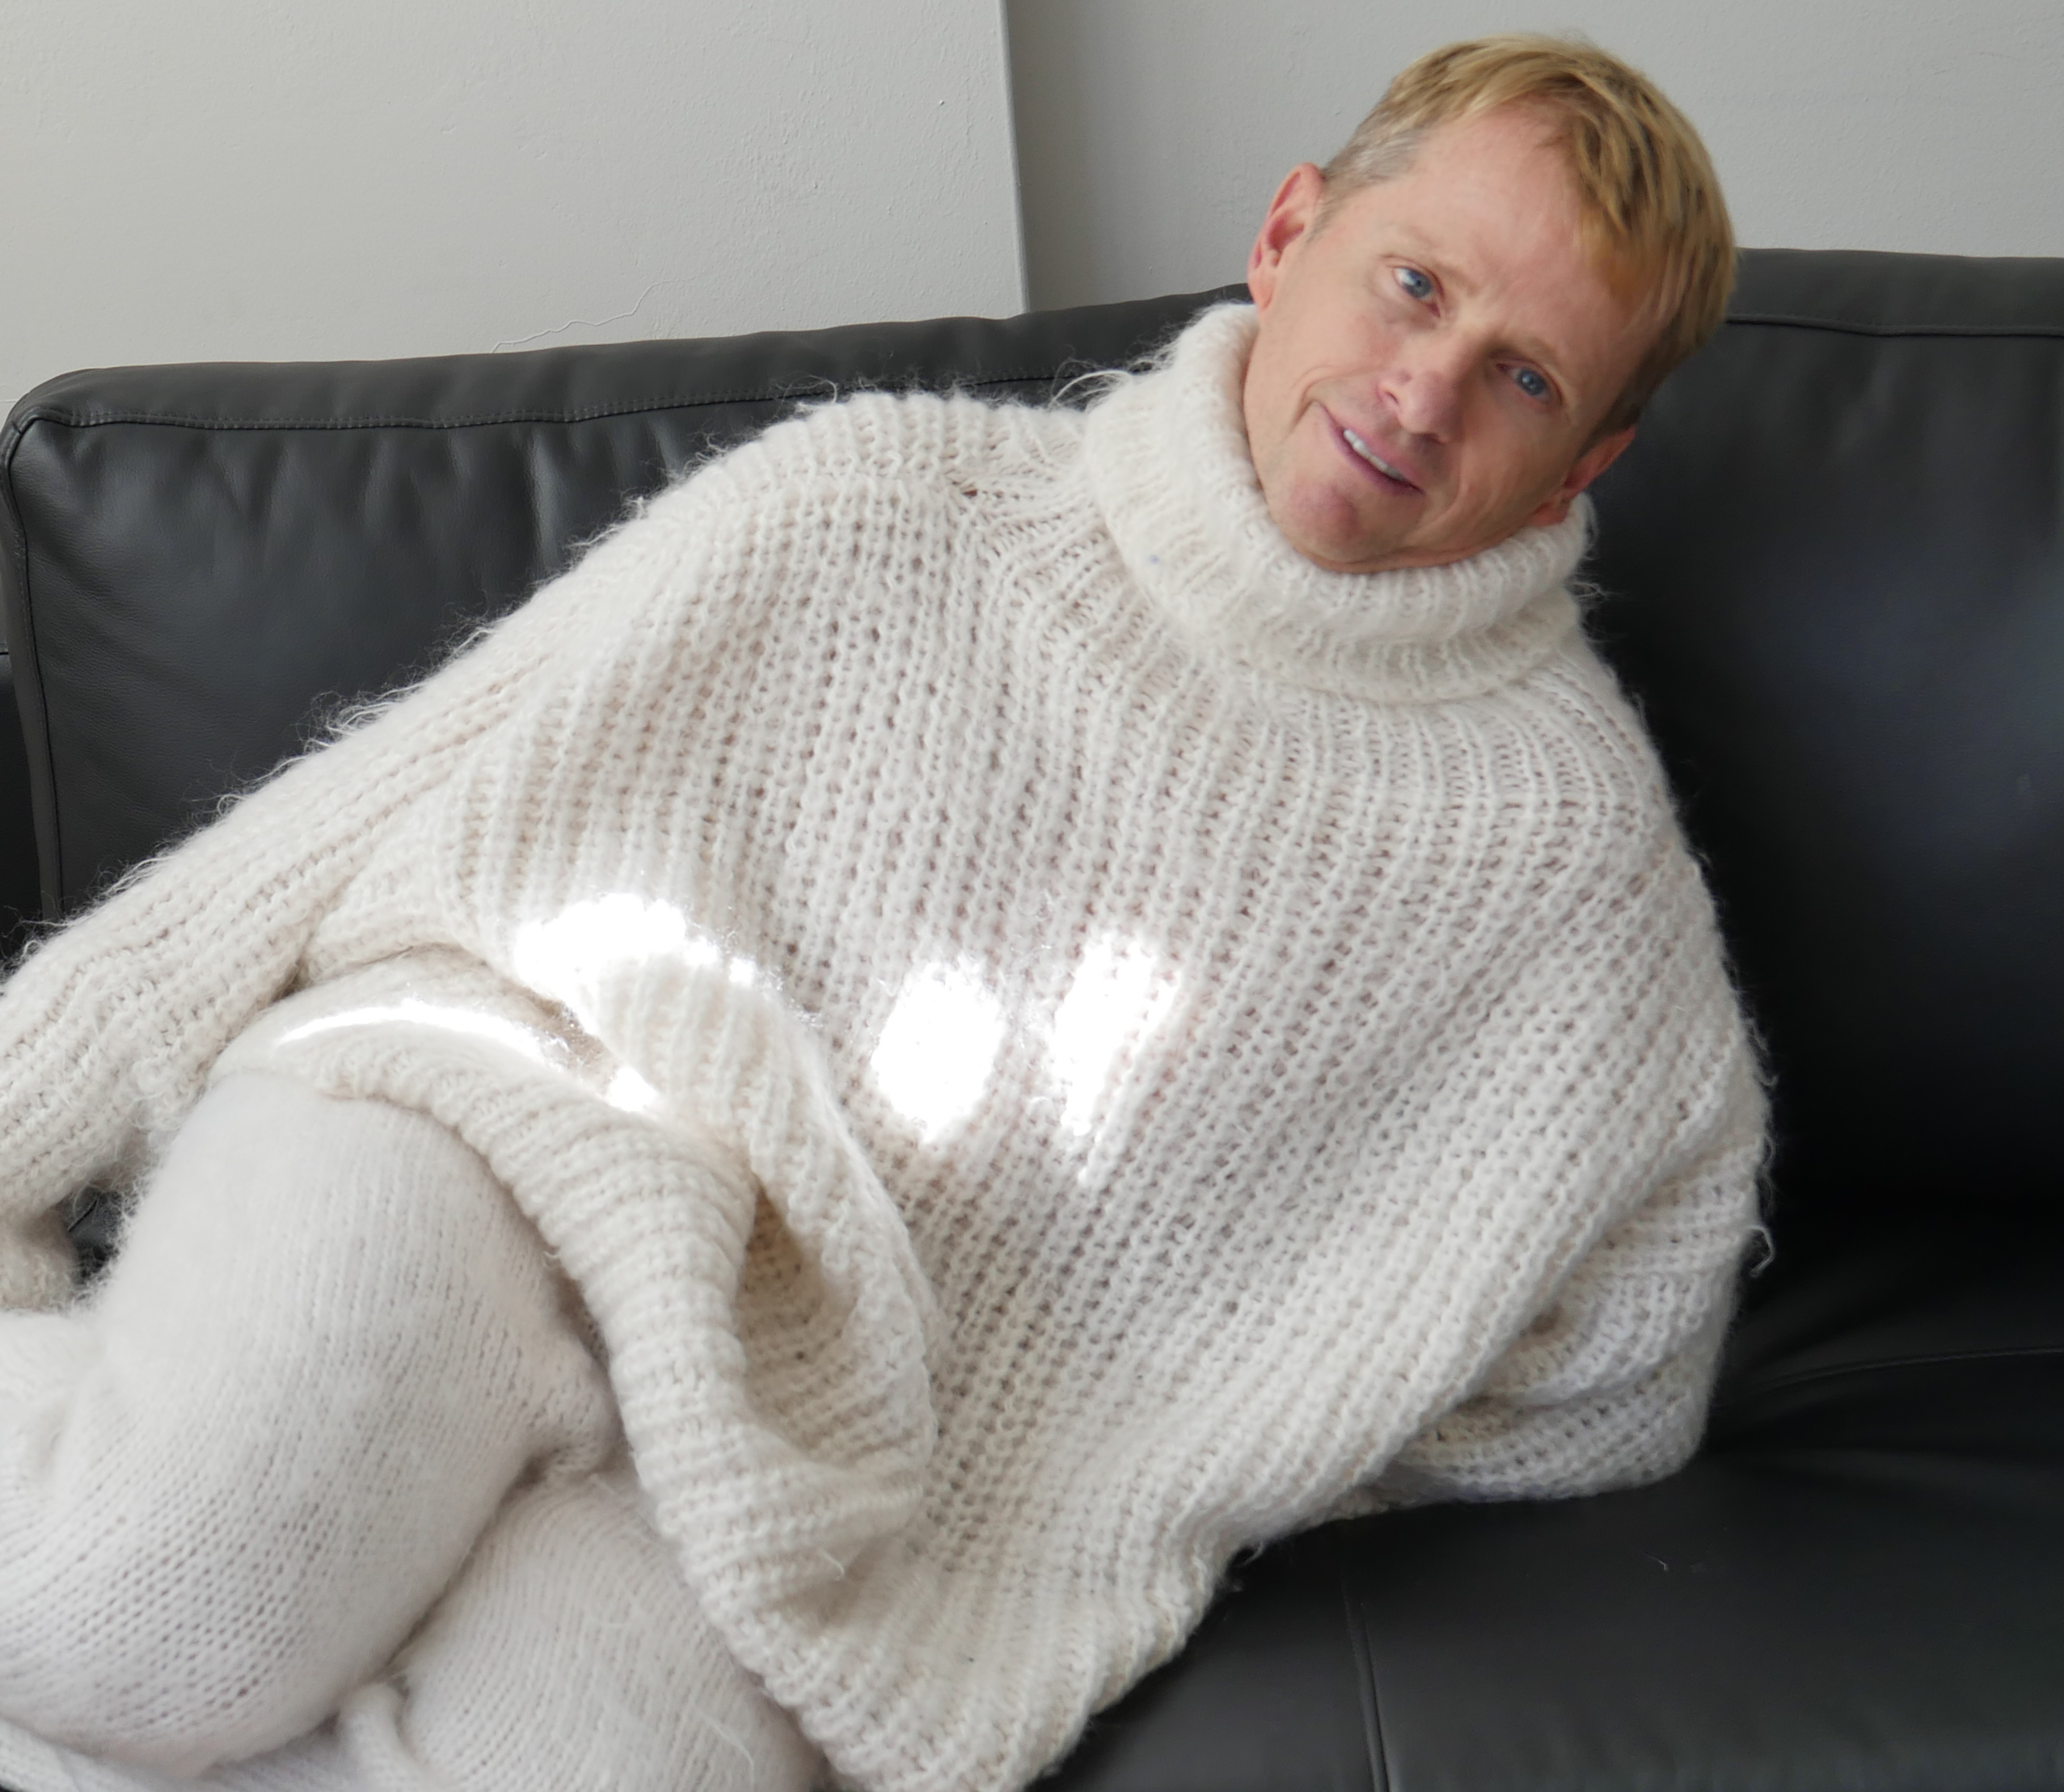 gay in mohair sweater